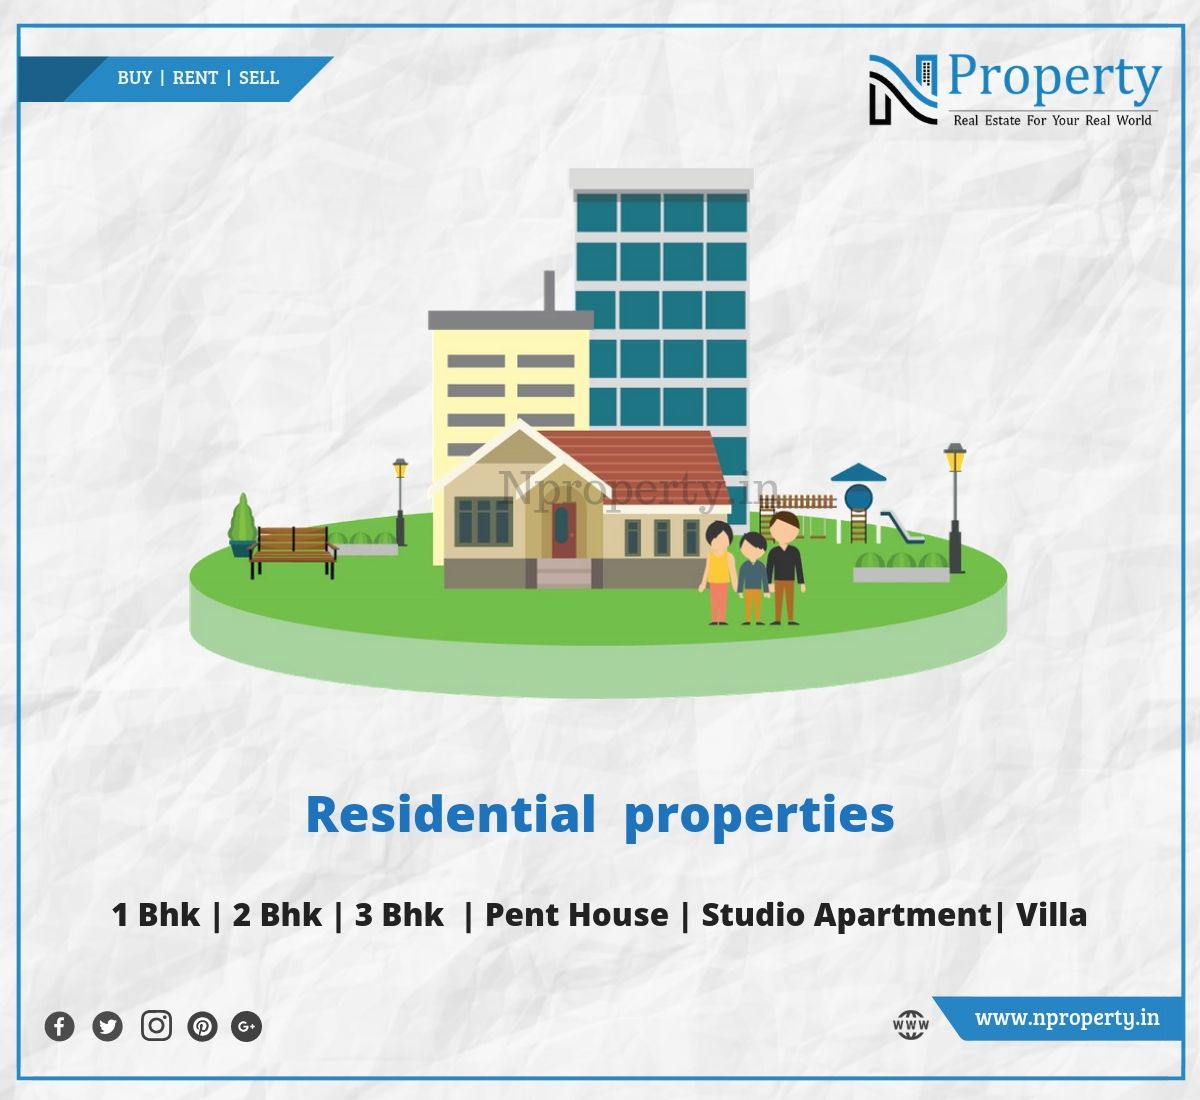 Default Parallels Plesk Panel Page Property Real Estate Sell Property Commercial Property